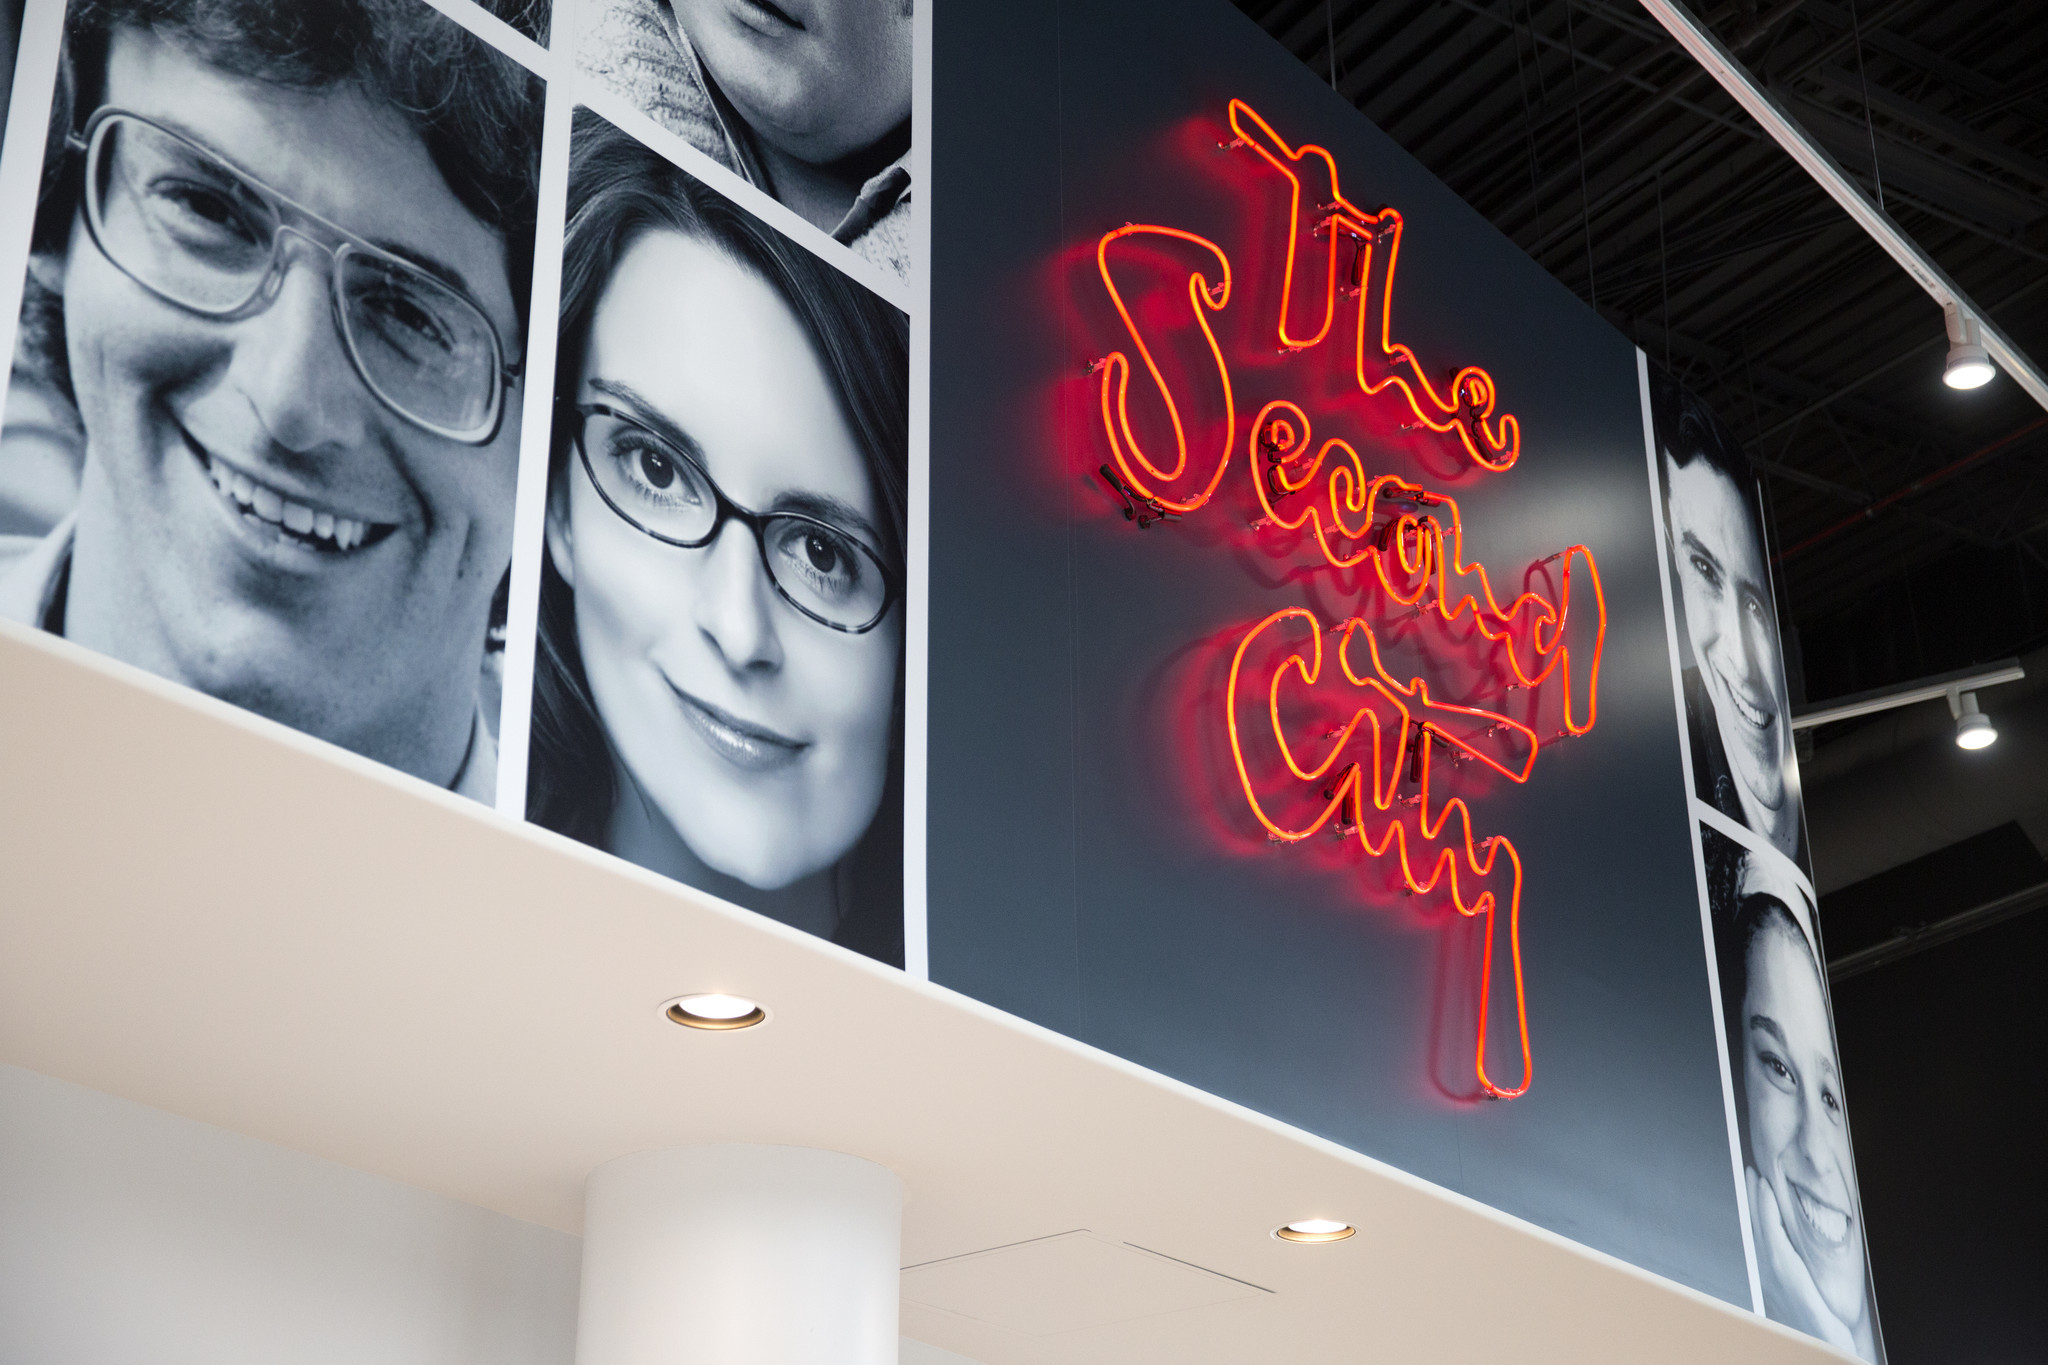 Second City to open Harold Ramis Film School, a first for comedy moviemaking - Chicago Tribune